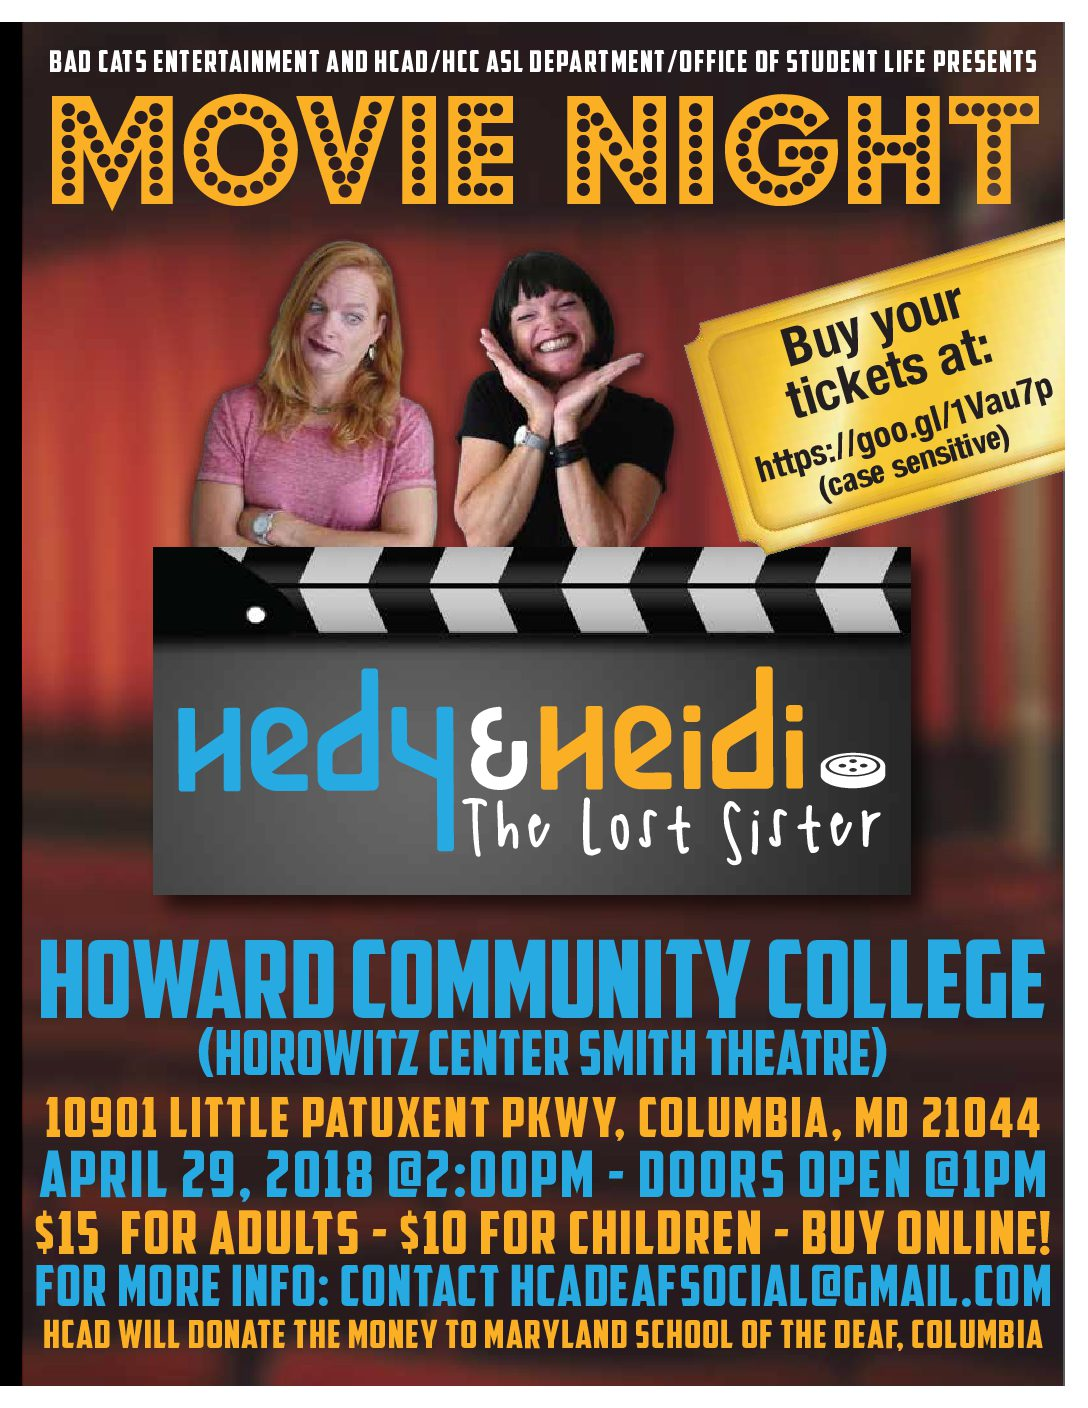 Hedy & Heidi: The Lost Sister